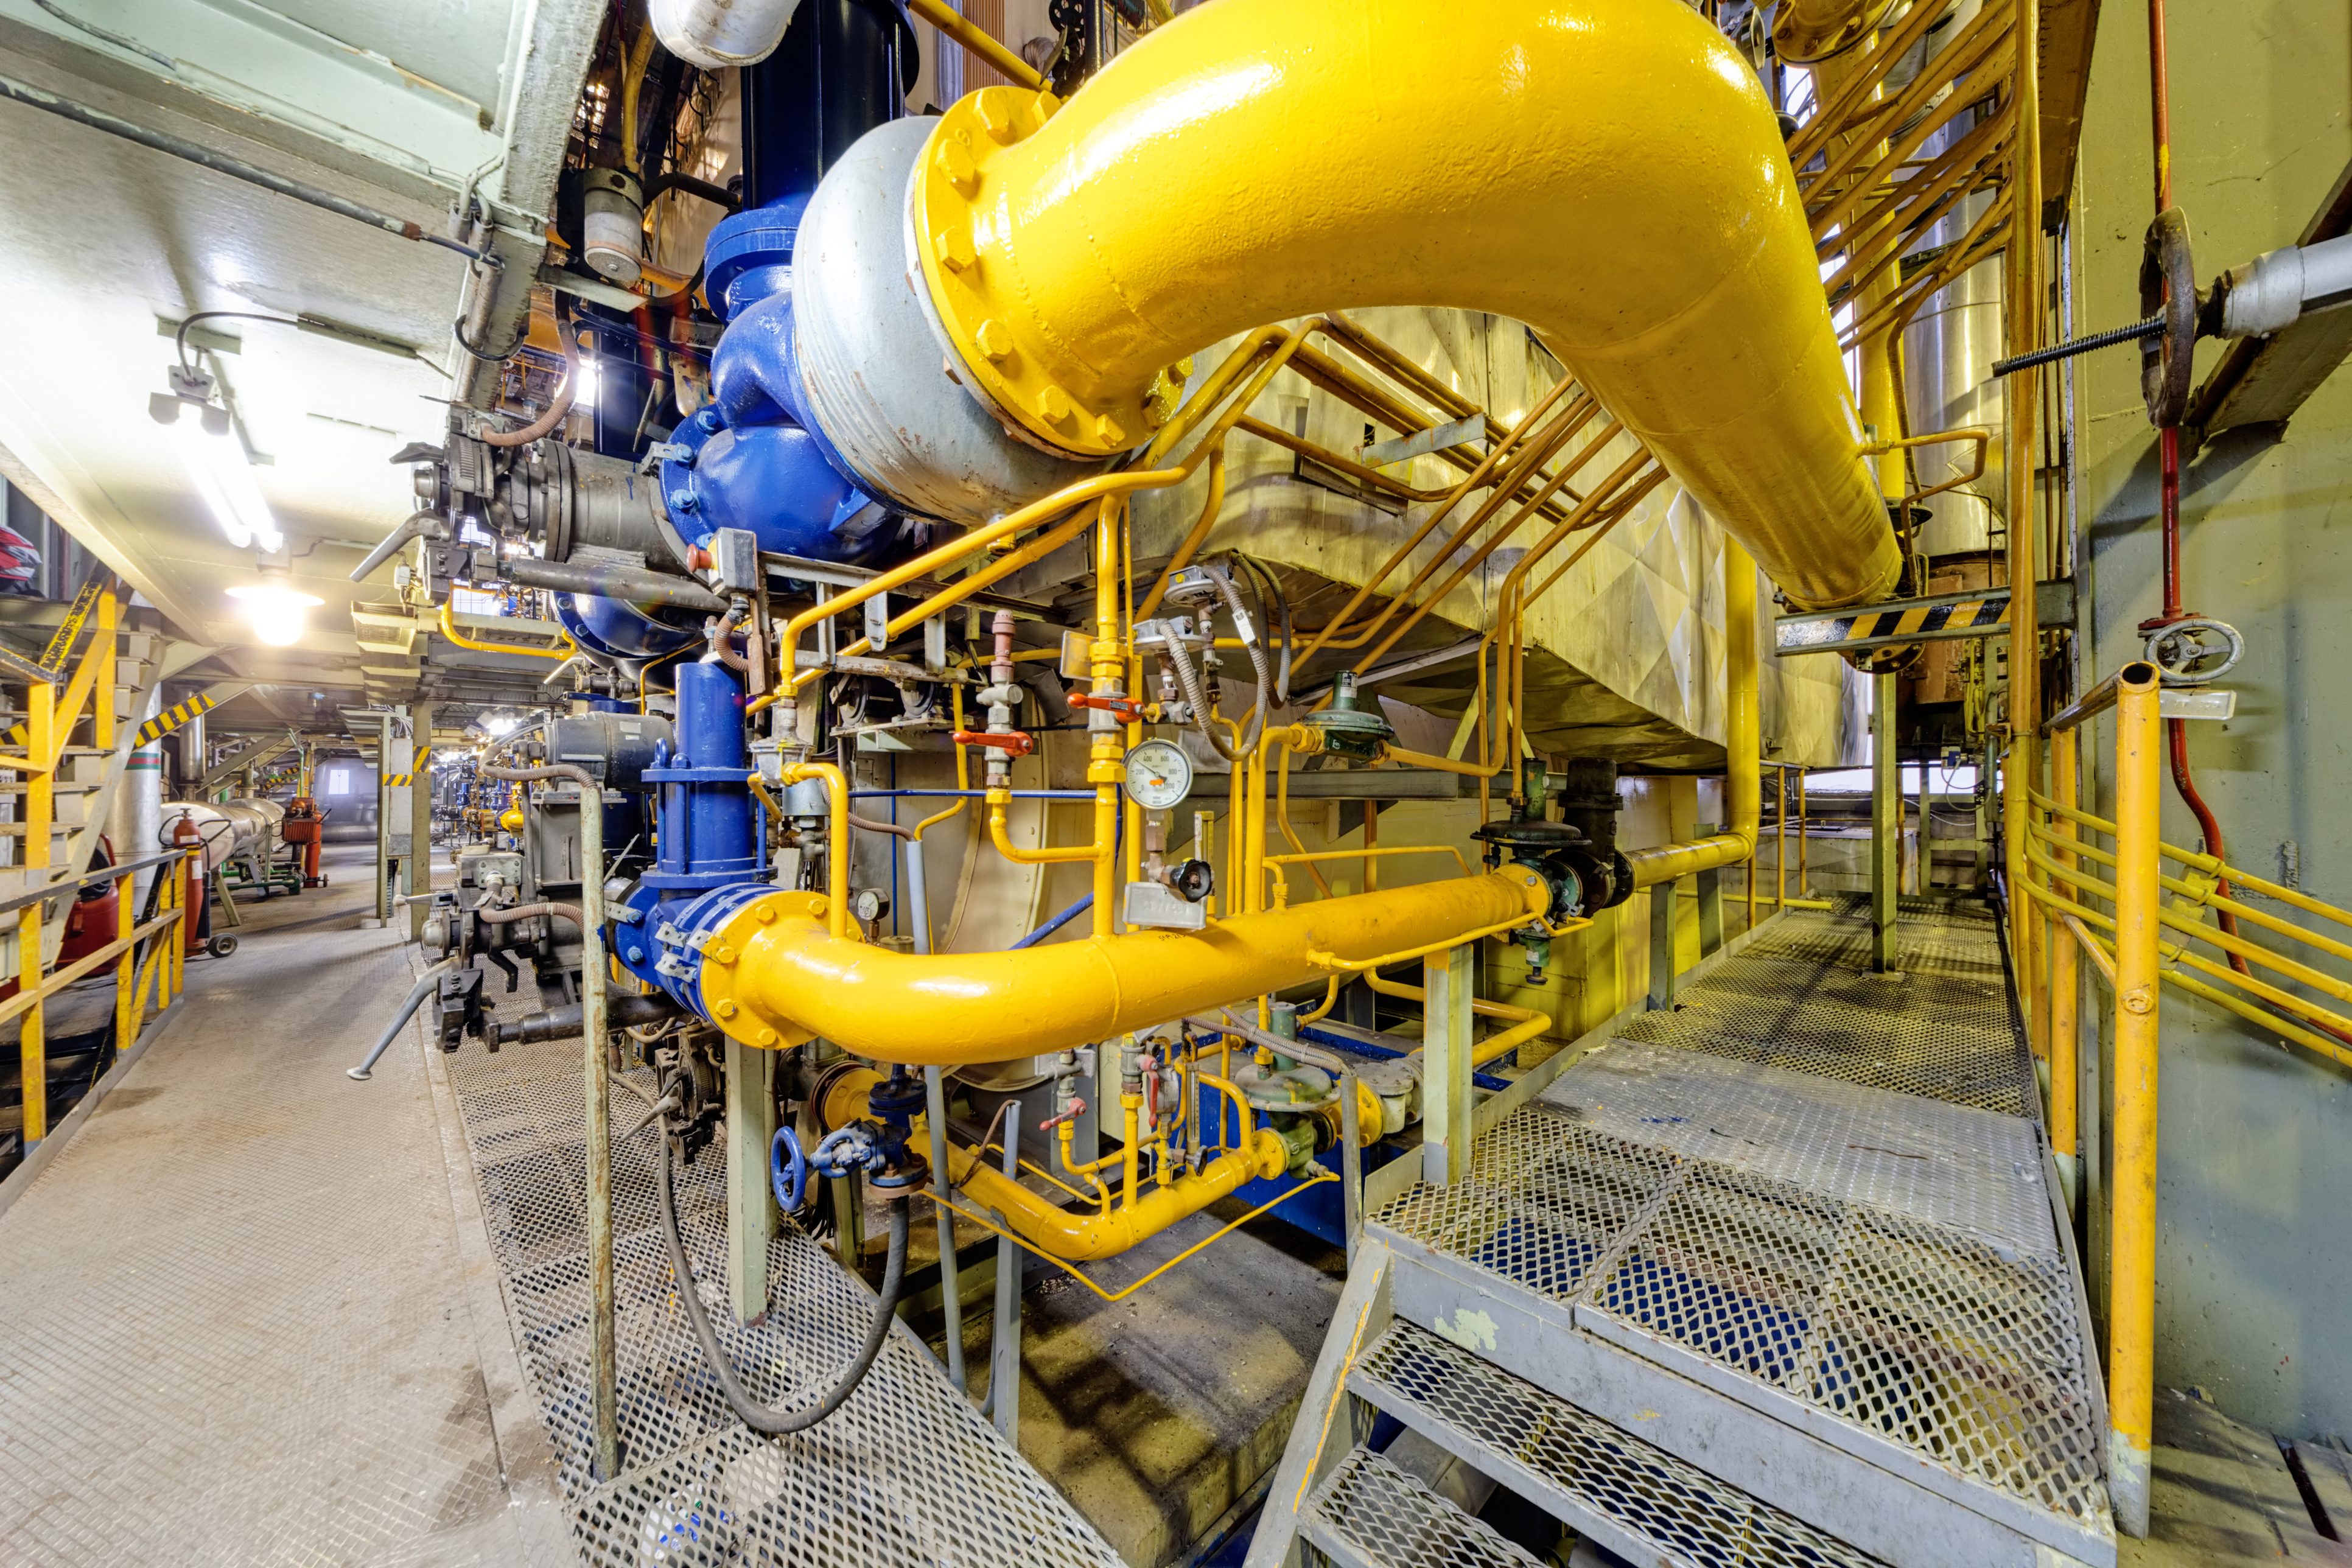 image of the interior piping of a natural gass plant showing bright yellow piping and scafolding